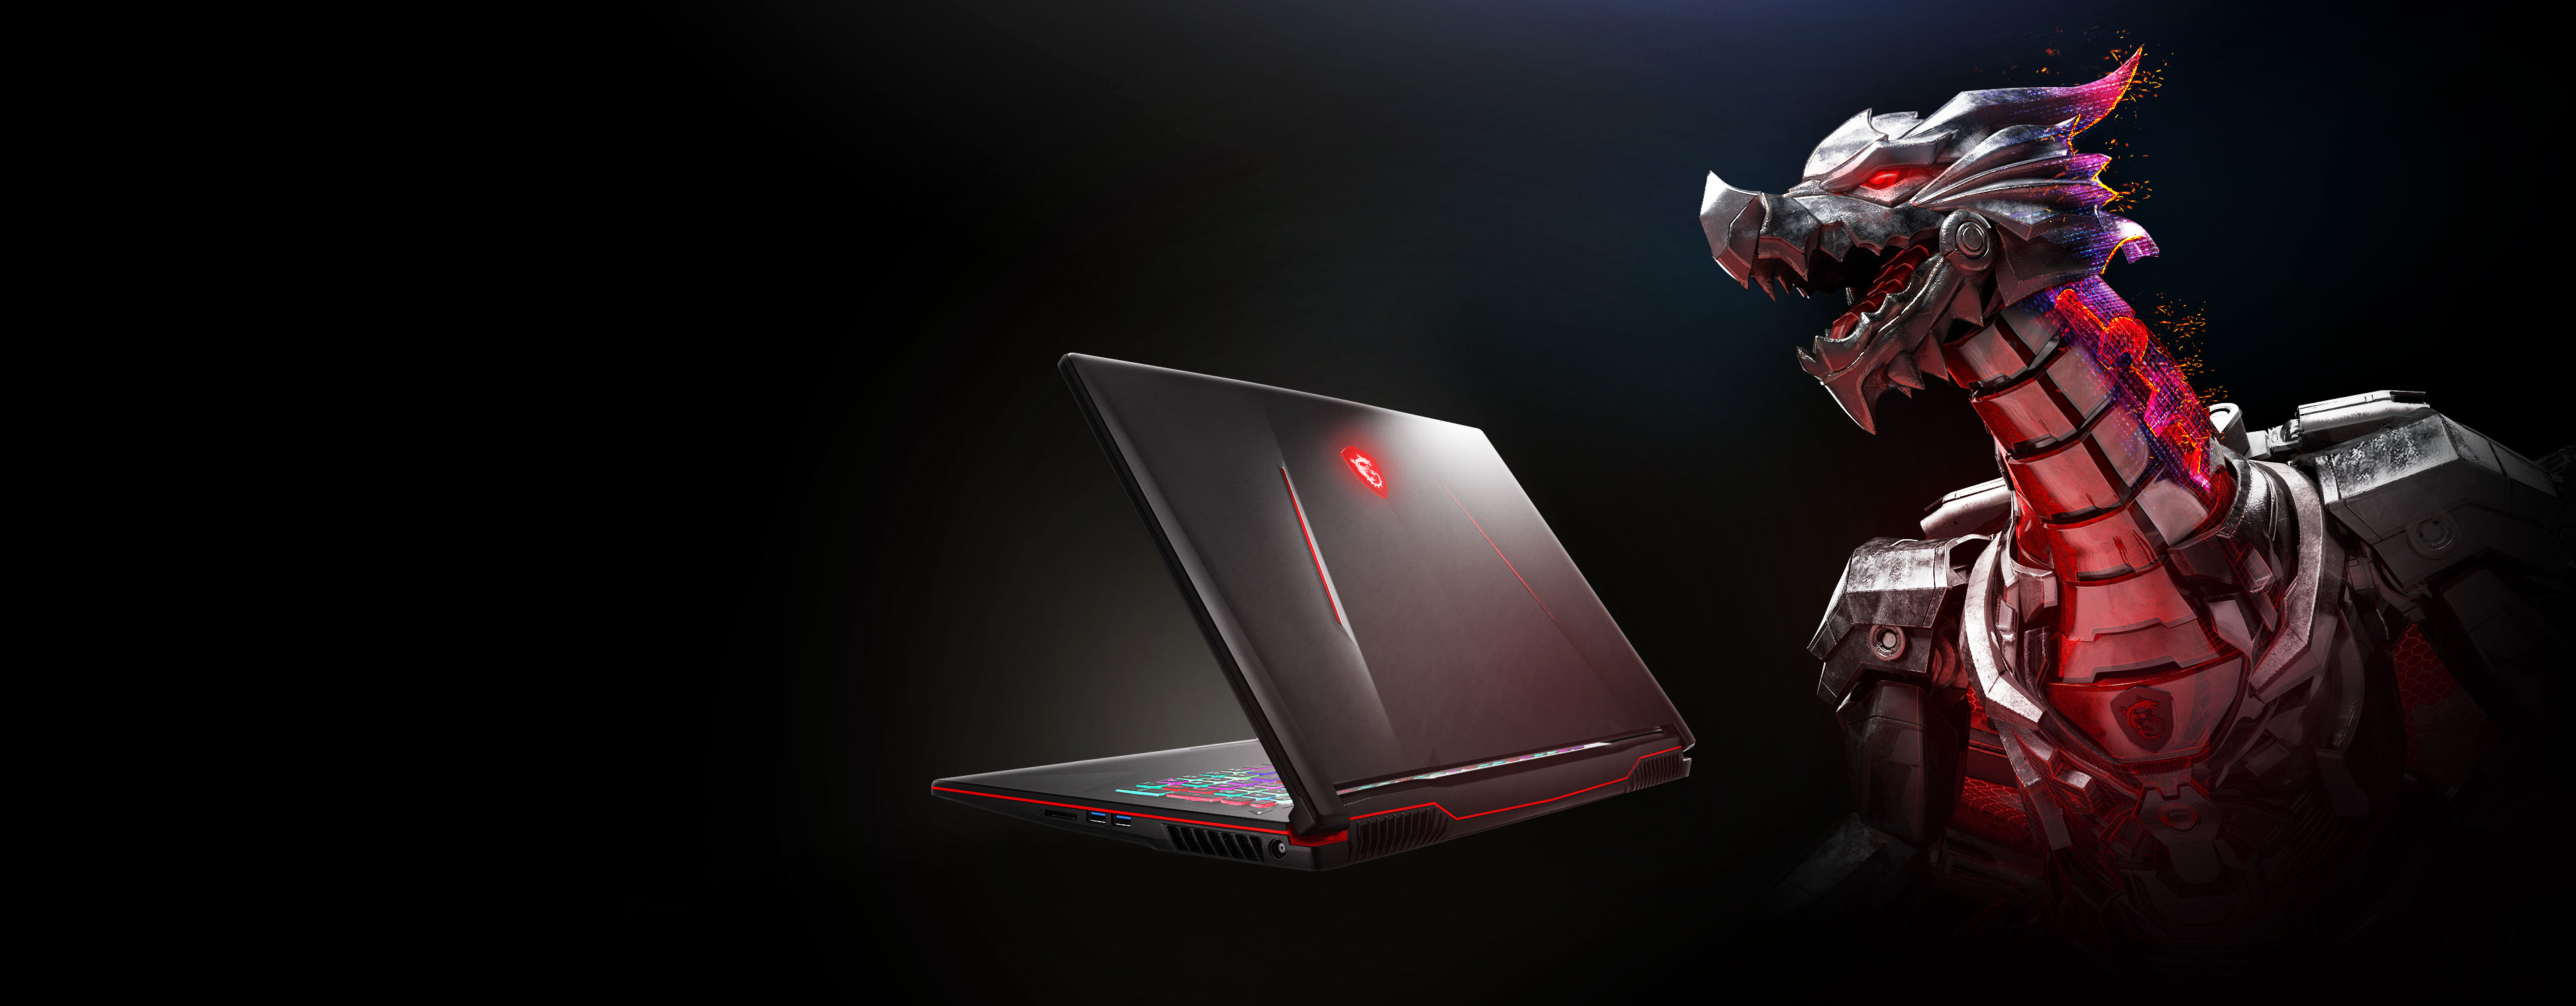 MSI GL63 - The Game Just Got Real